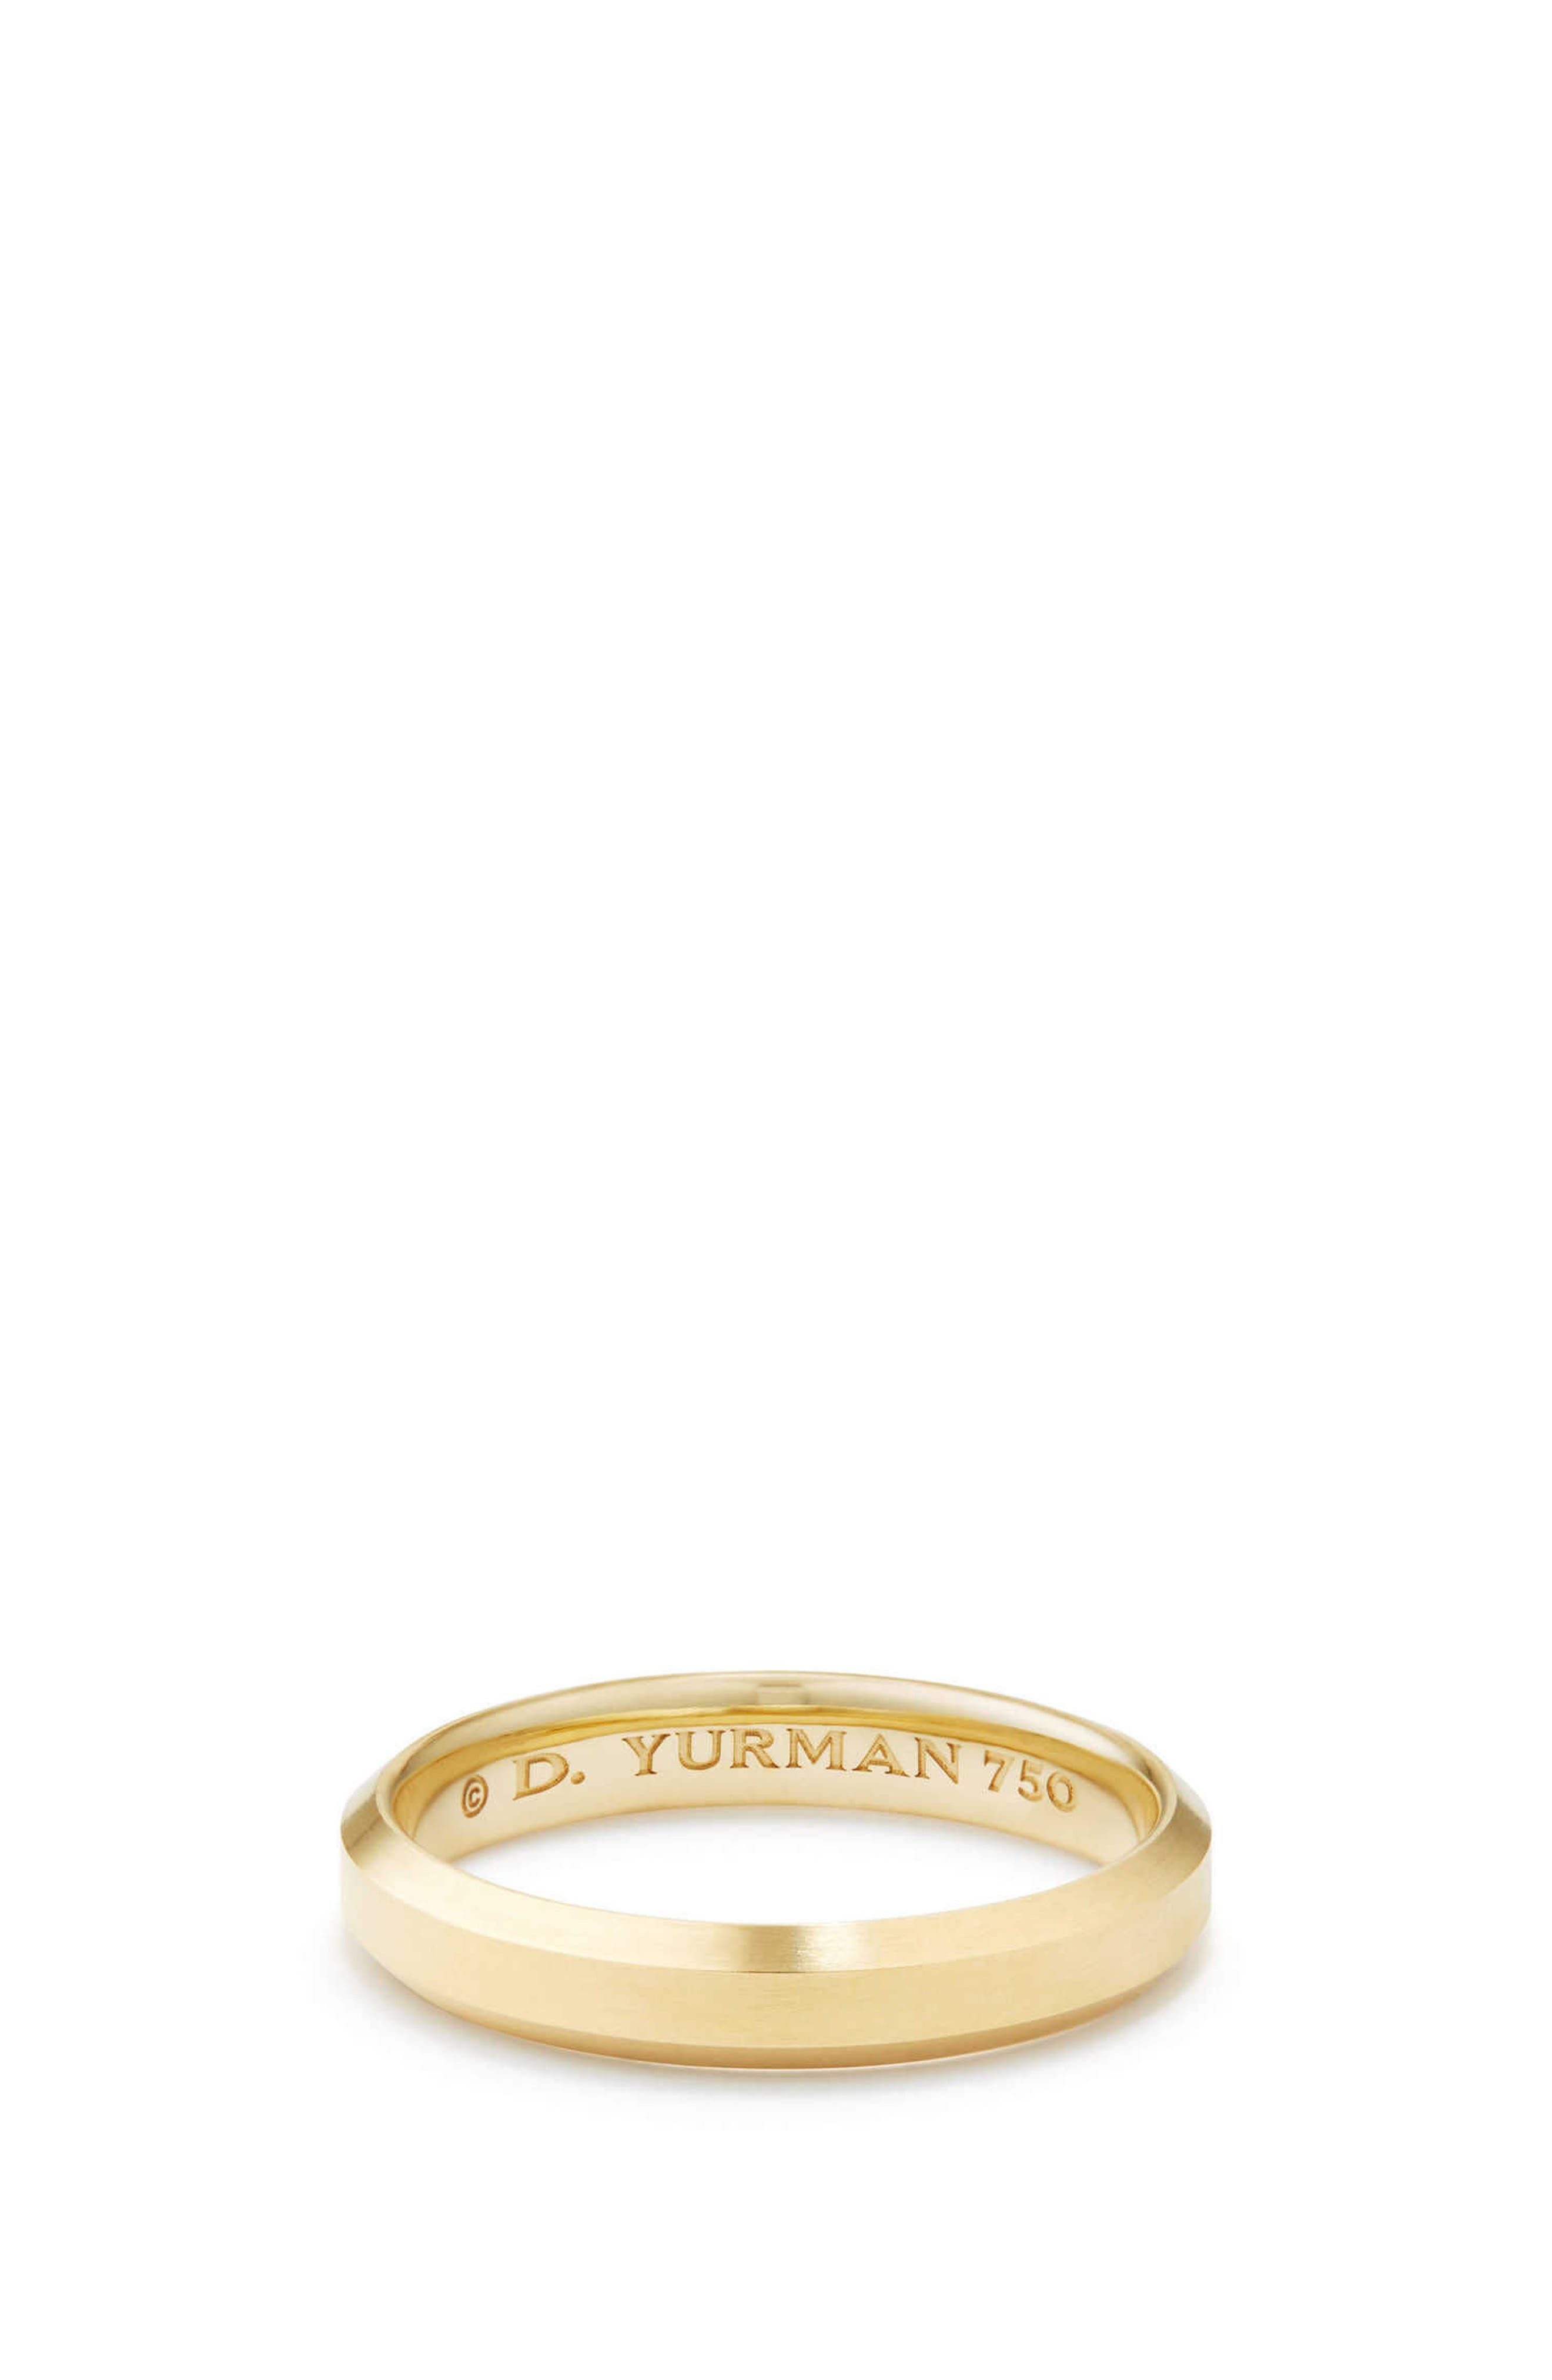 Streamline Band Ring in 18K Gold,                             Main thumbnail 1, color,                             710